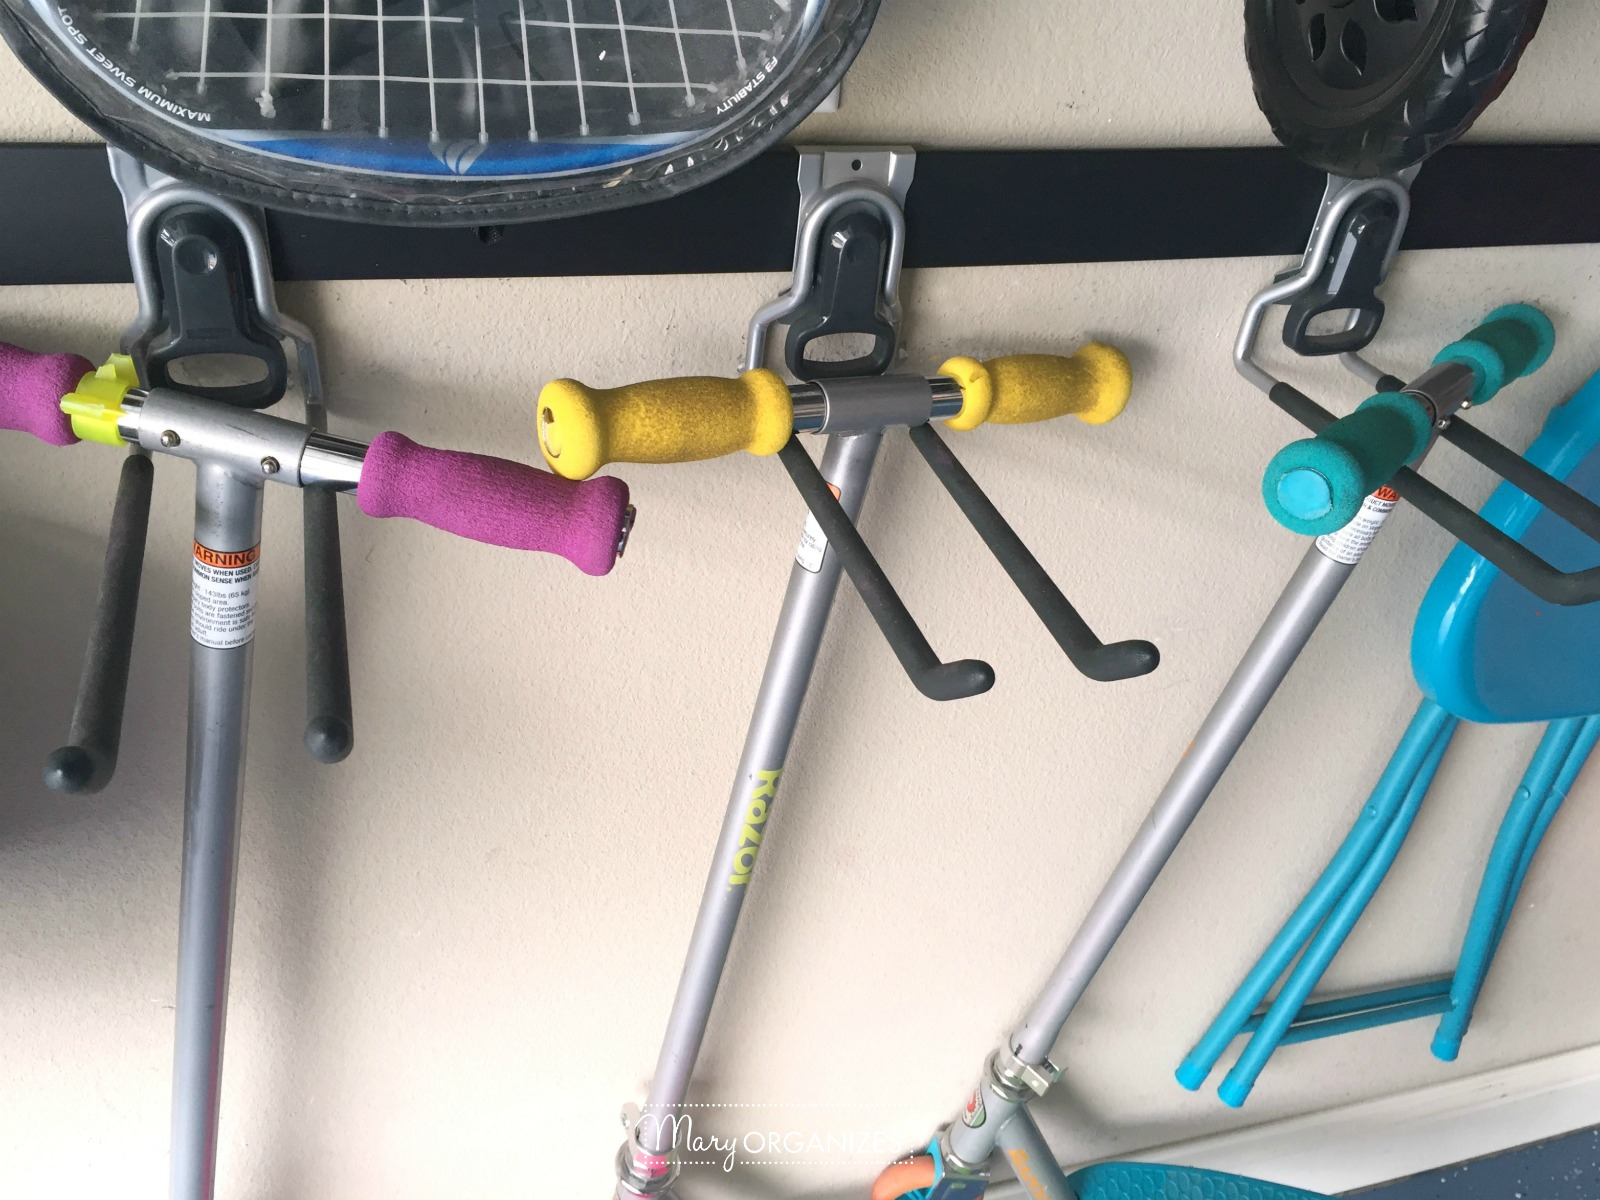 Garage Organizing - How to hang bikes scooters ripsticks balls and more -g4